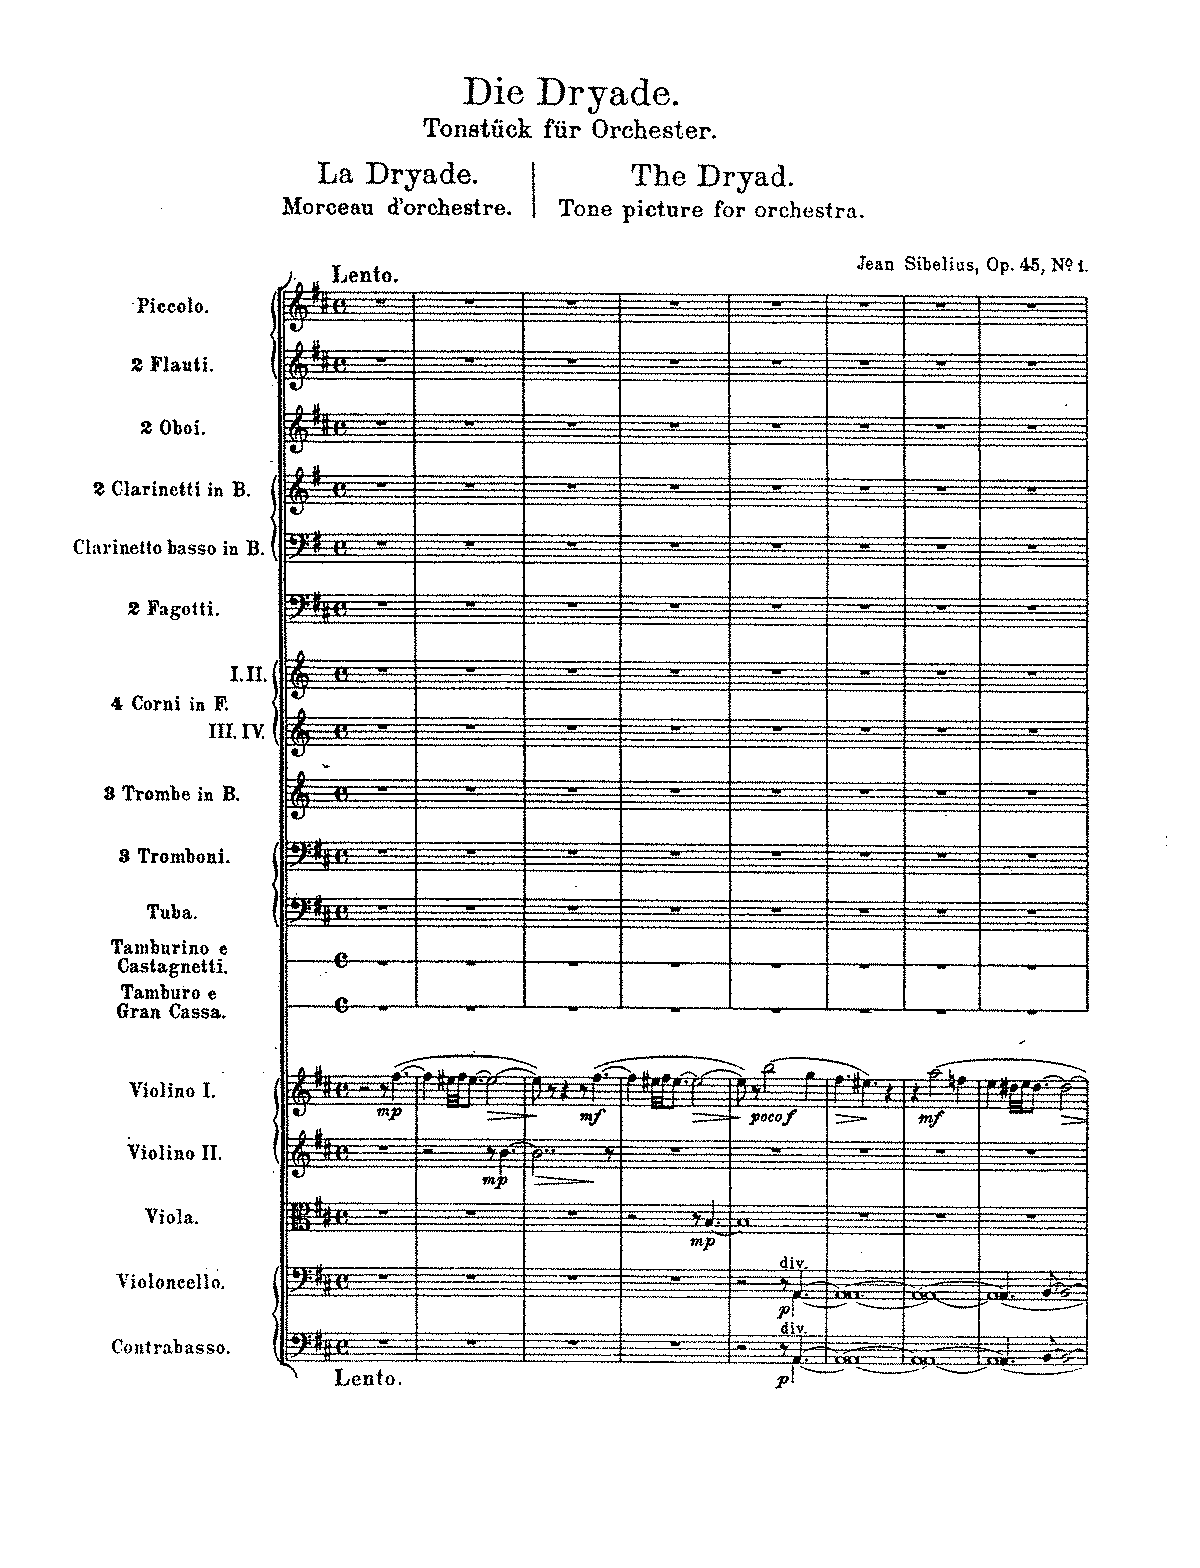 Sibelius - The Dryad, Op.45 No.1 (orch. score).pdf